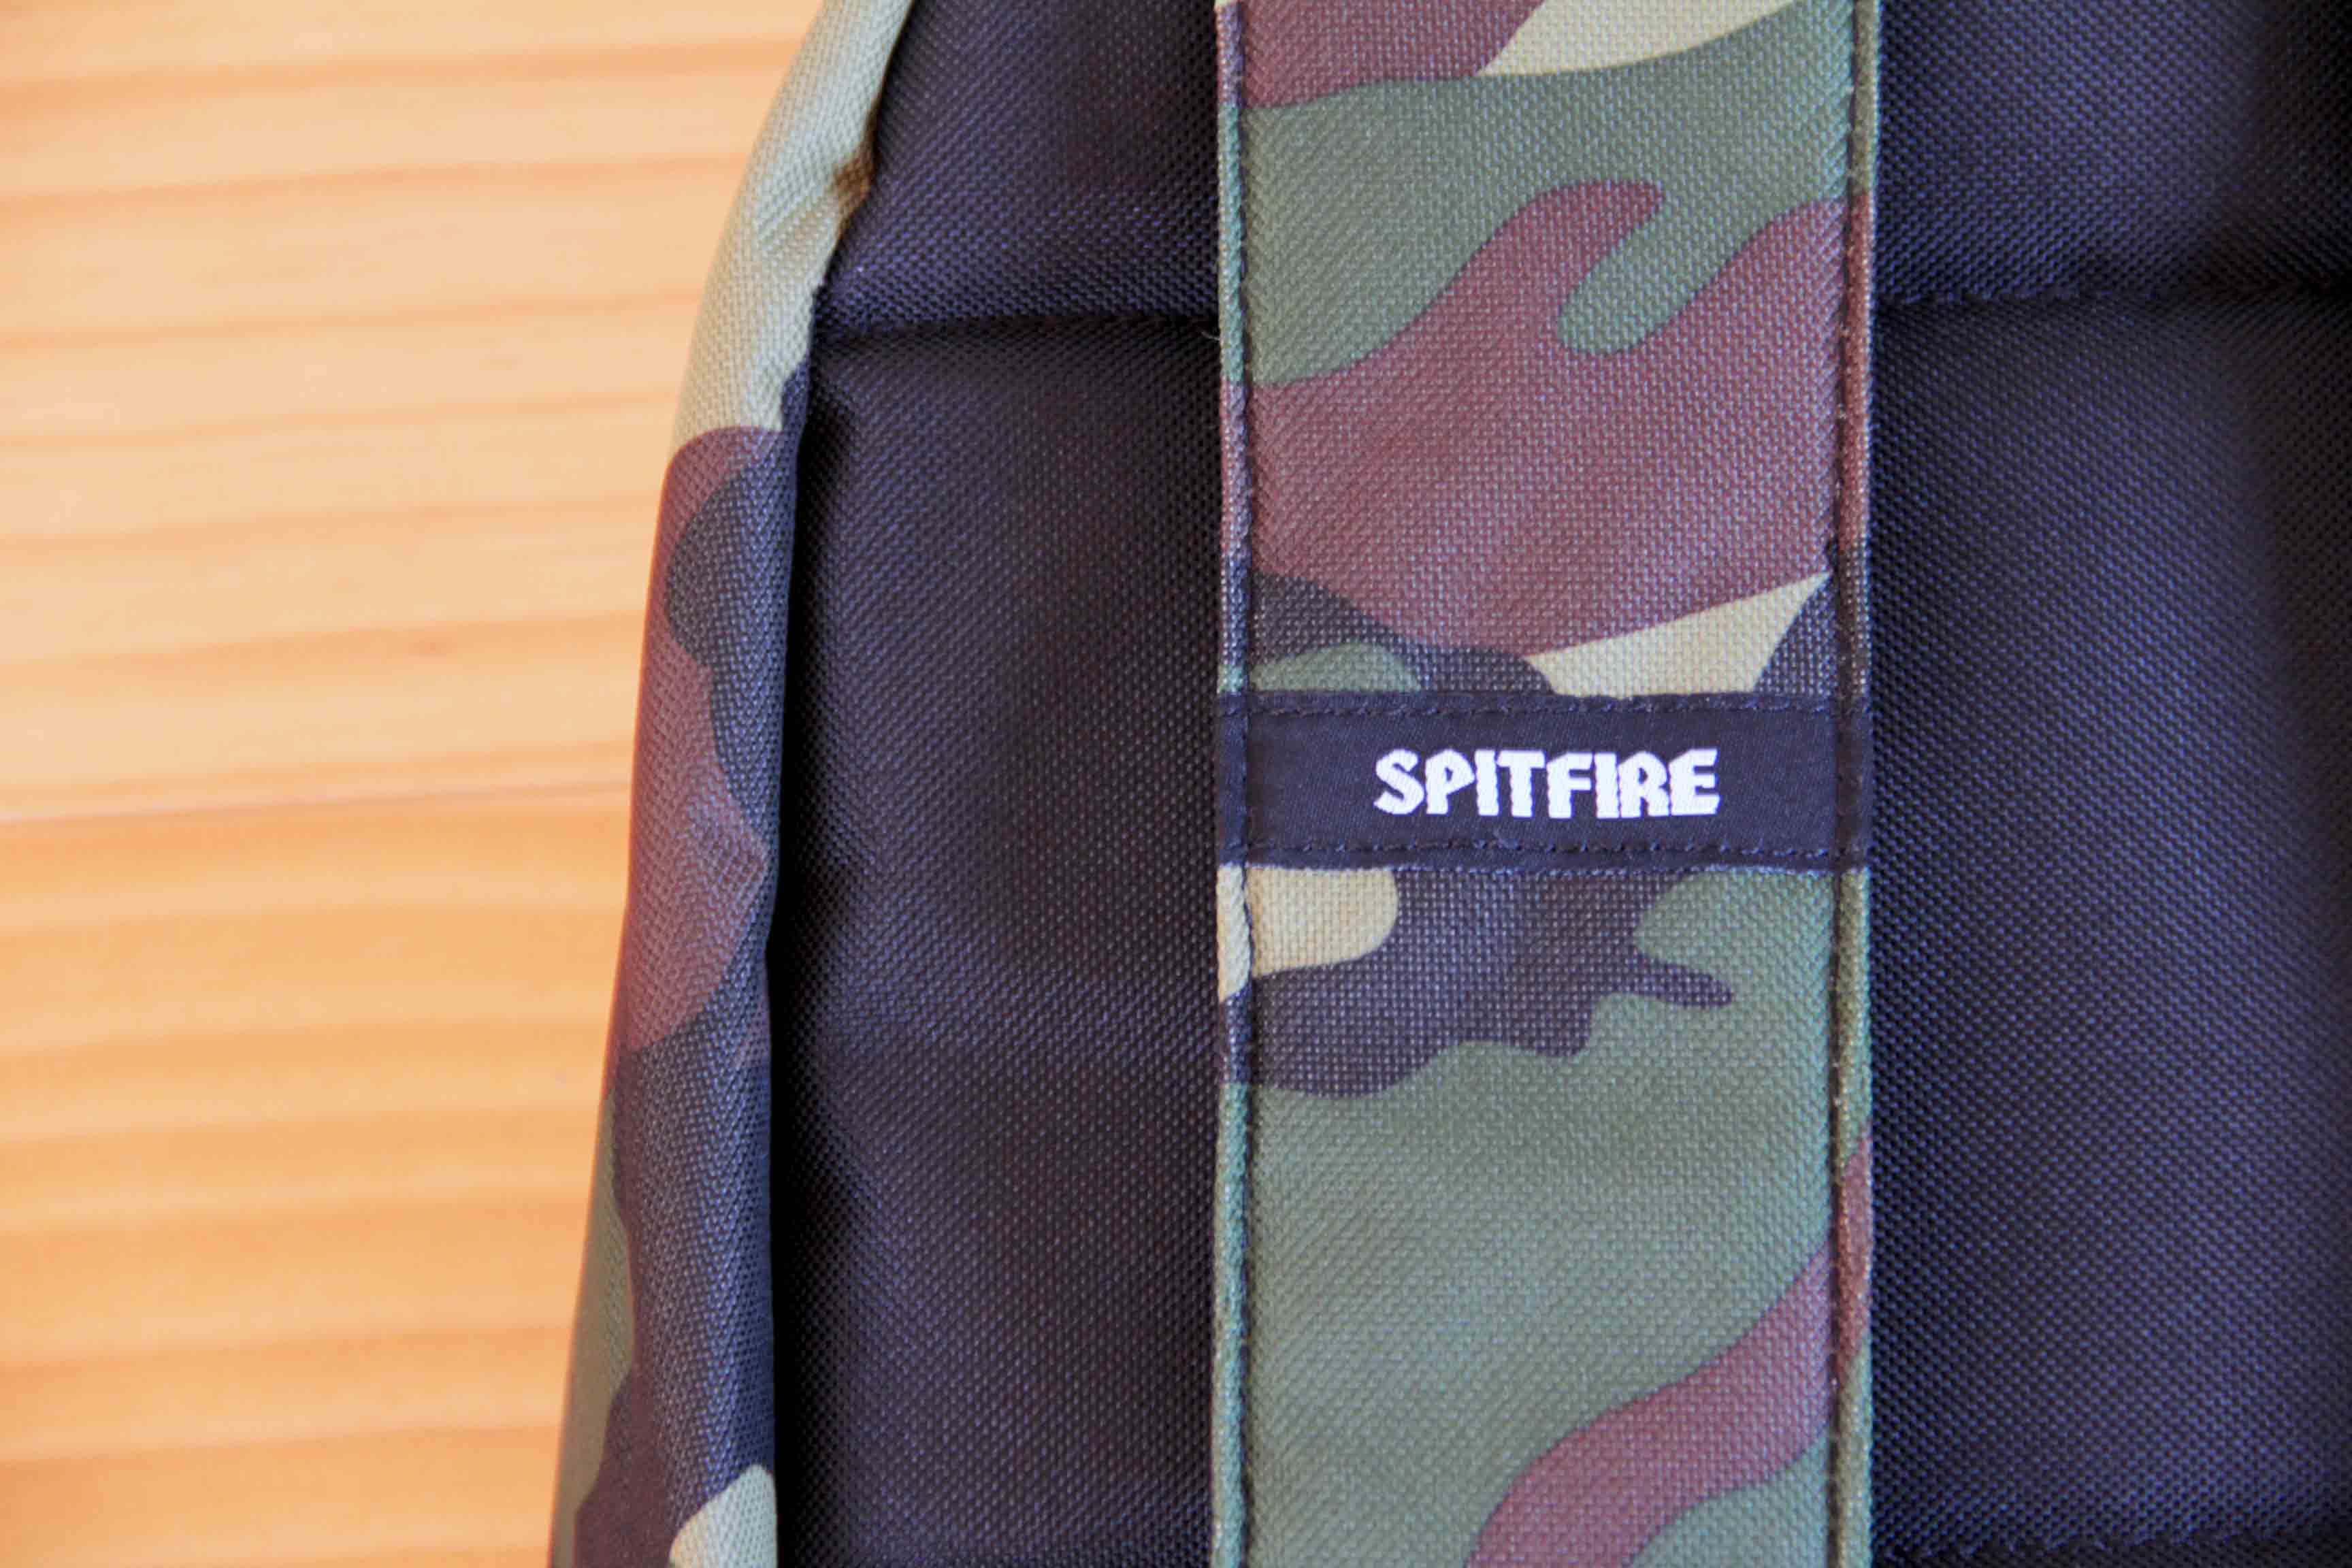 SPITFIRE CLASSIC BACKPACK「SPIT FIRE」のロゴの写真